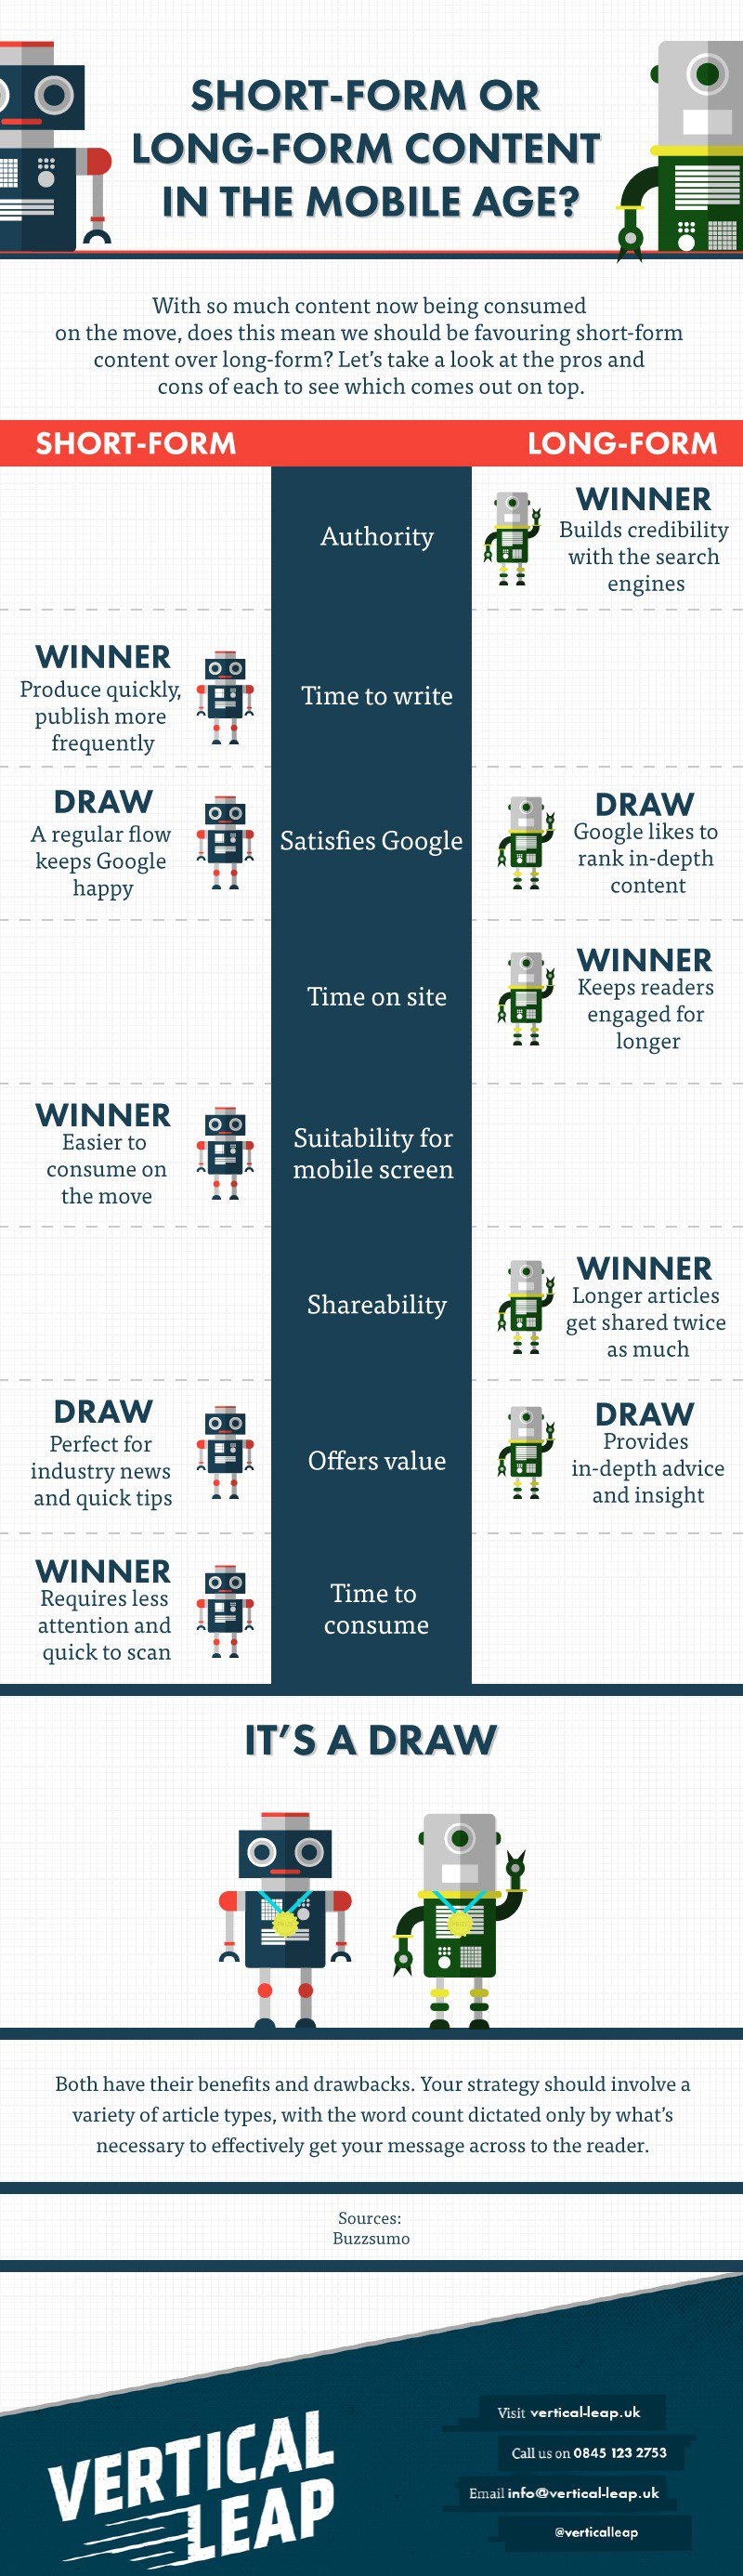 long for versus short form content in mobile age1